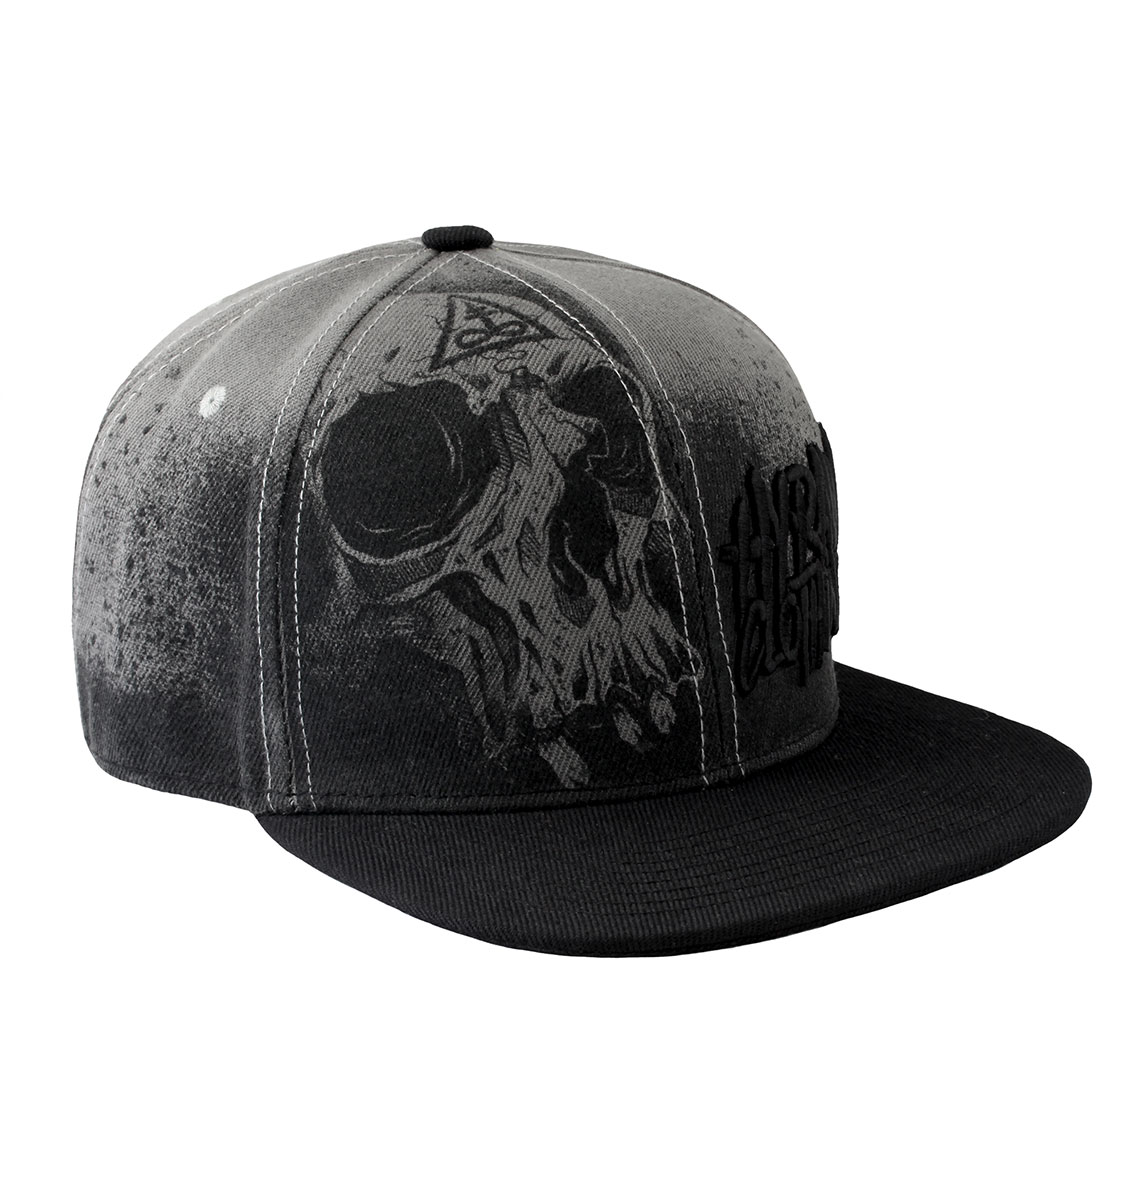 CASQUETTE SNAPBACK - MISERY GREY